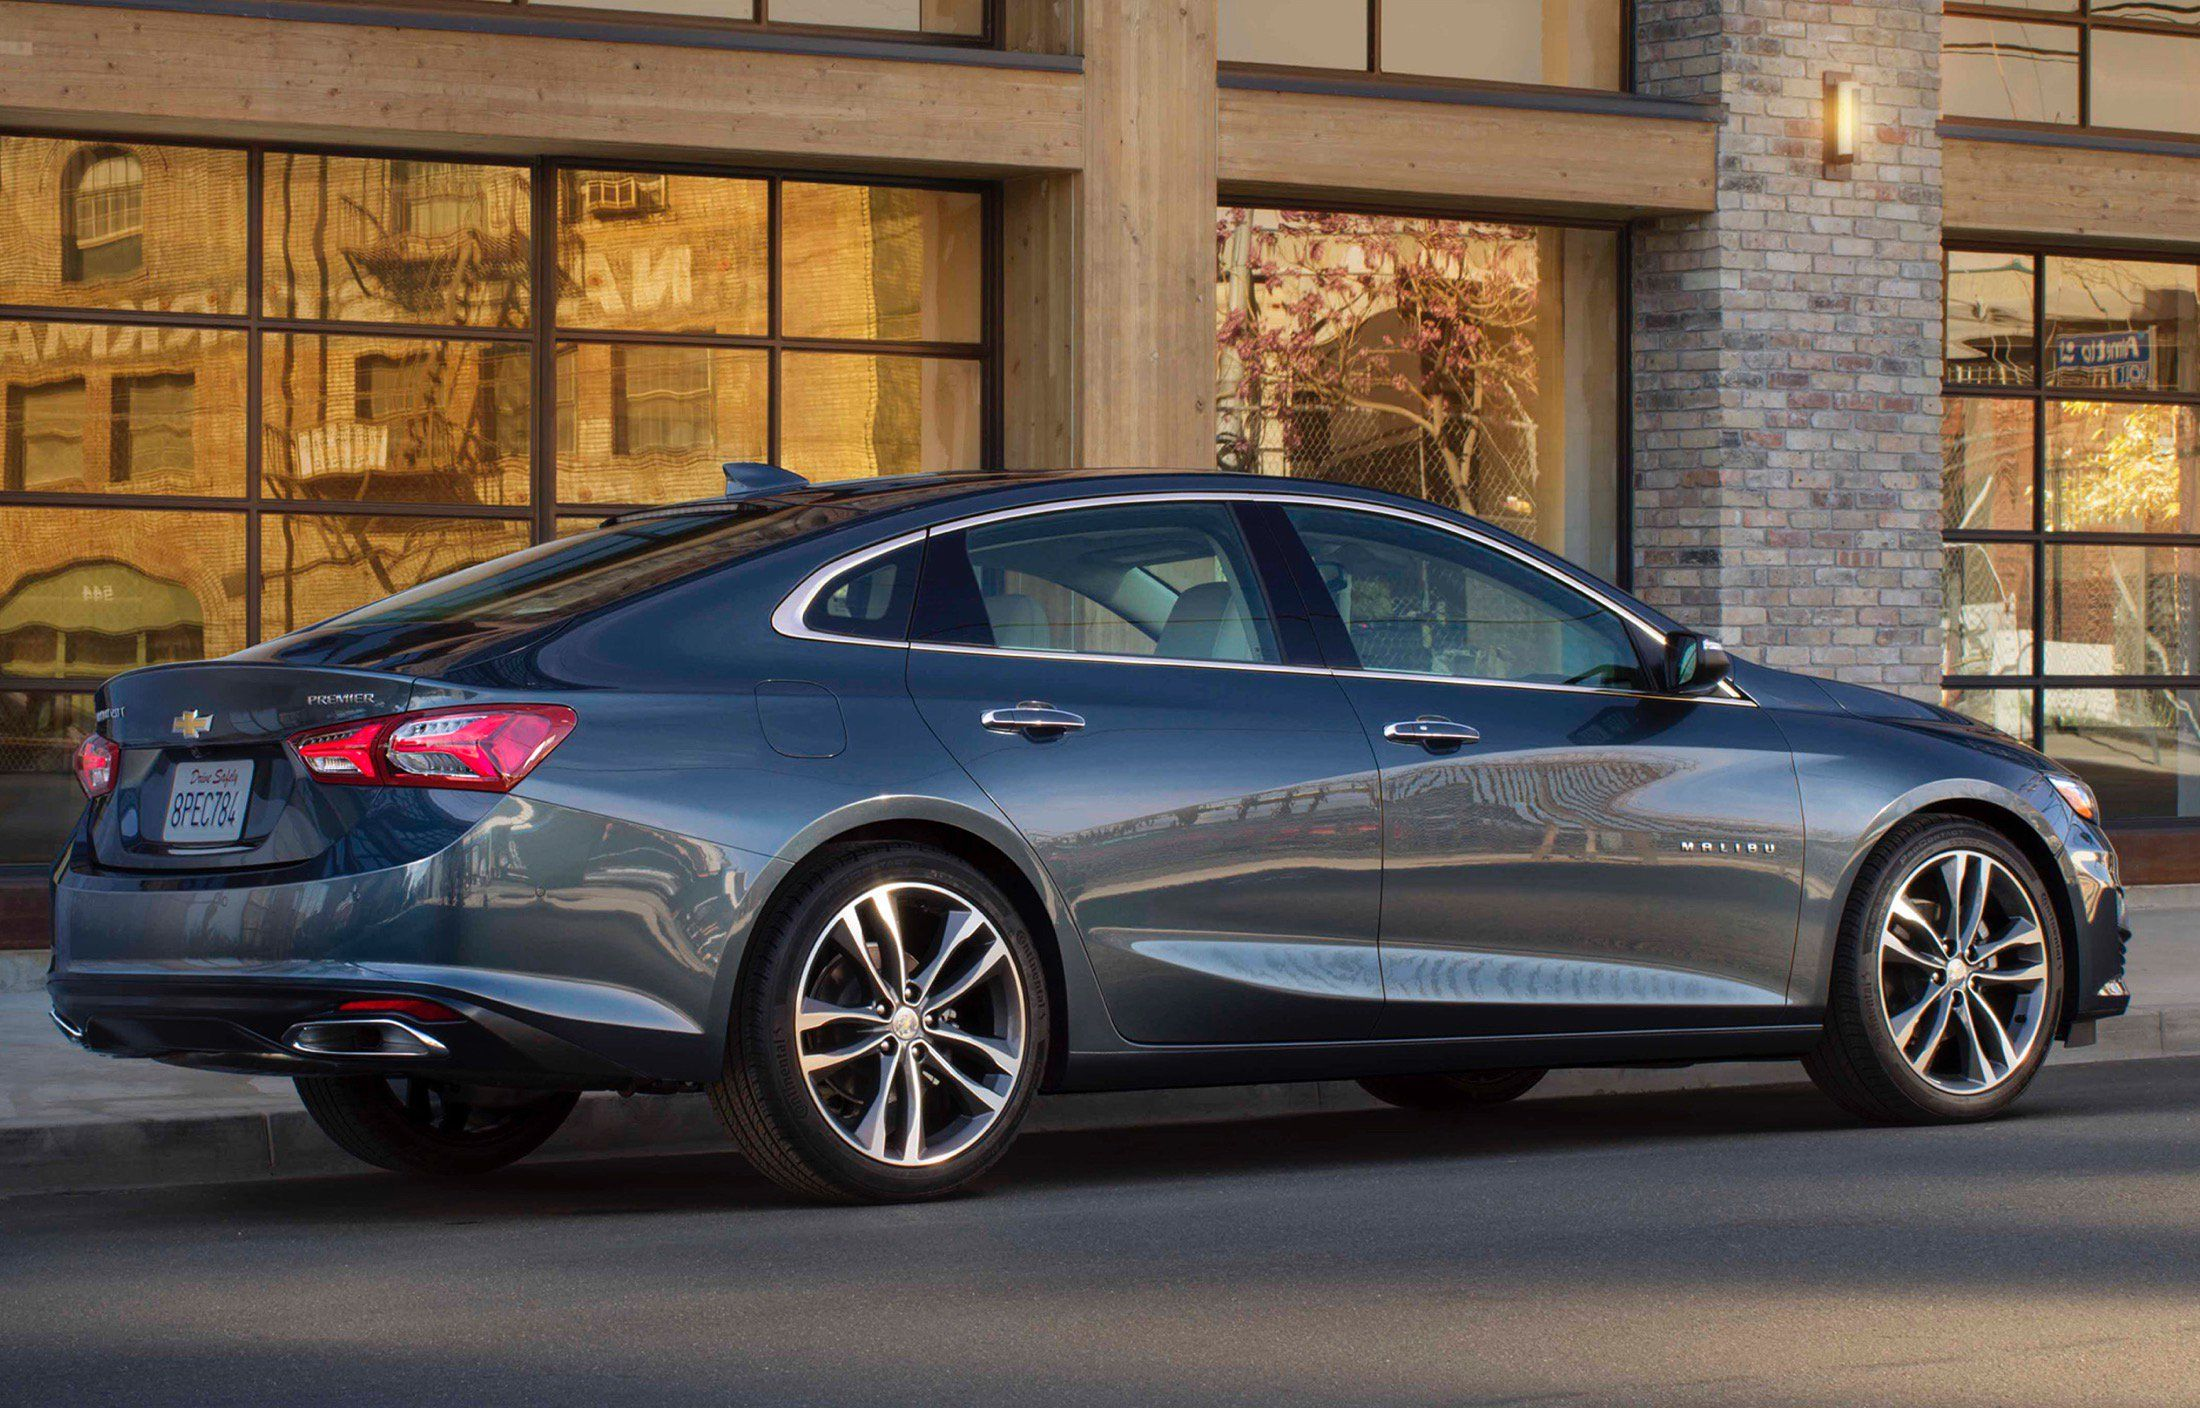 2019 Chevy Malibu Grey Google Search Chevy Malibu Chevy Cruze